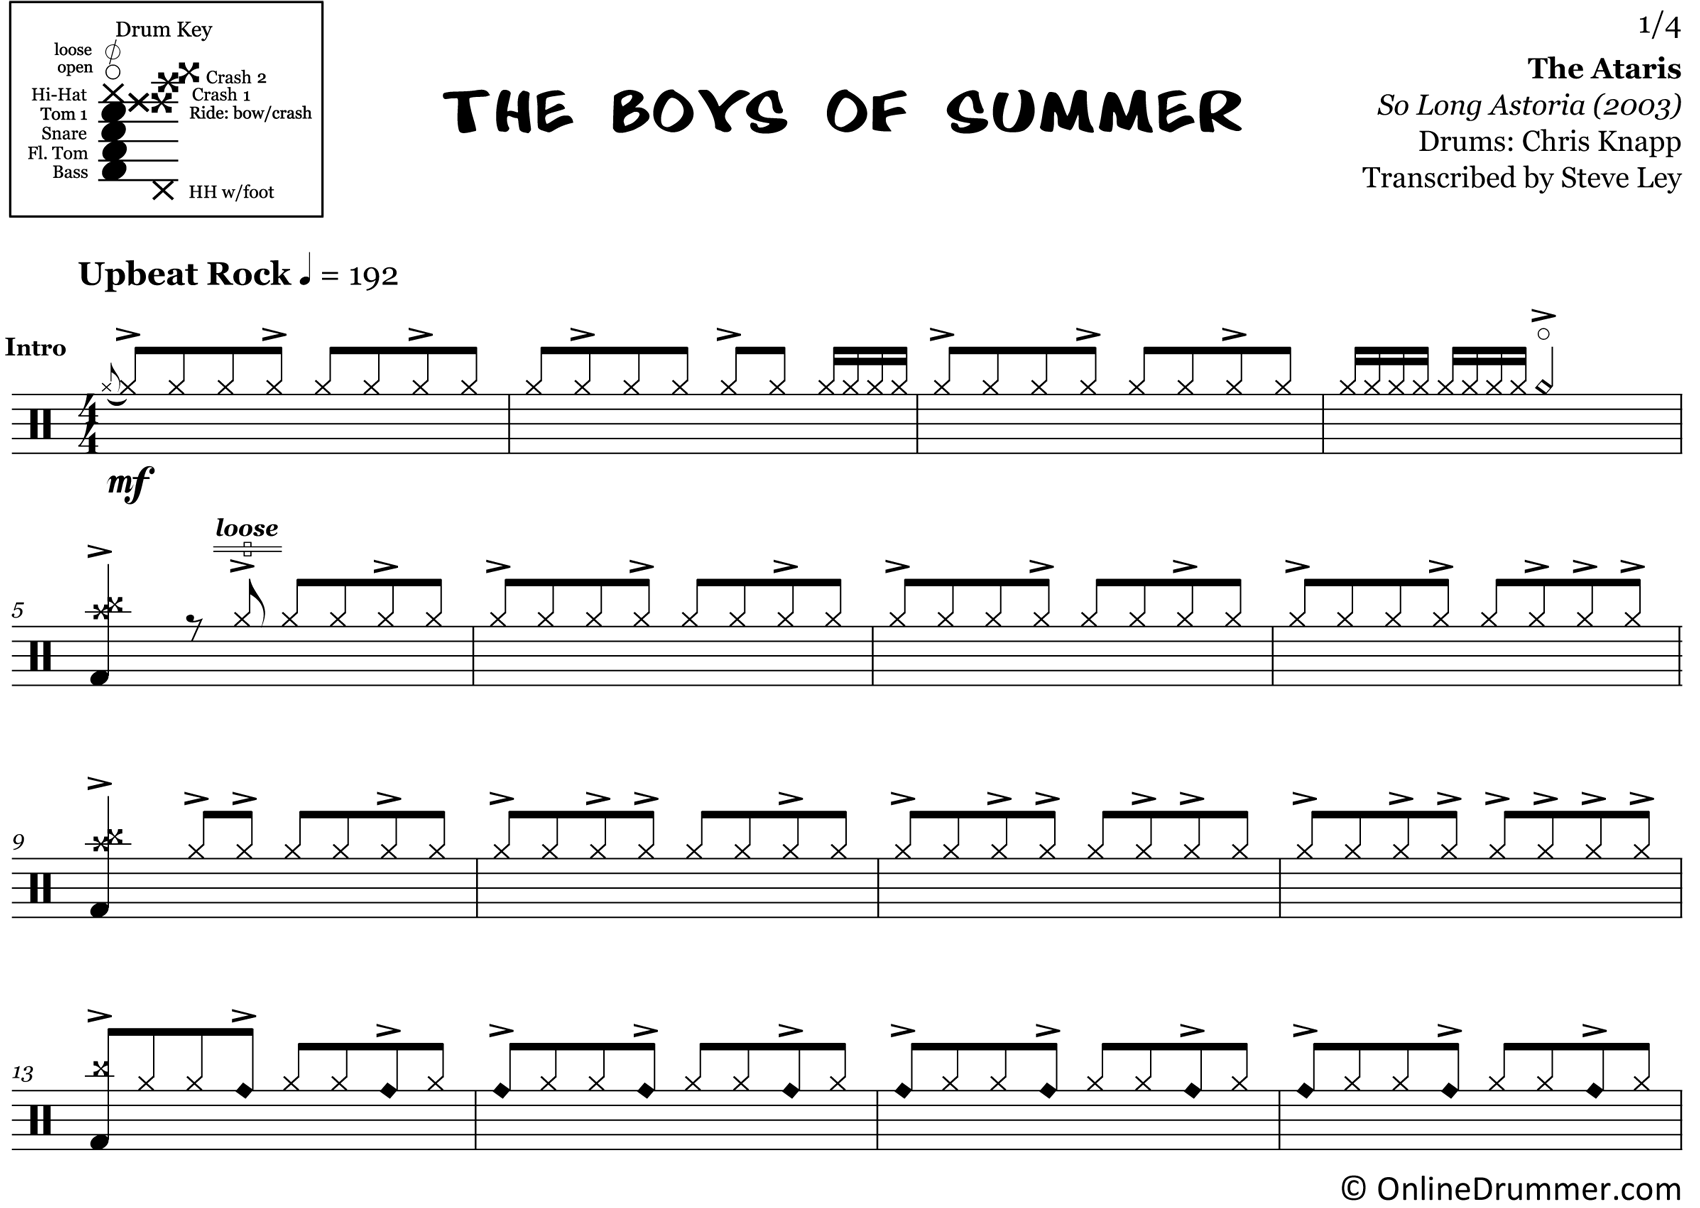 The Boys of Summer - The Ataris - Drum Sheet Music